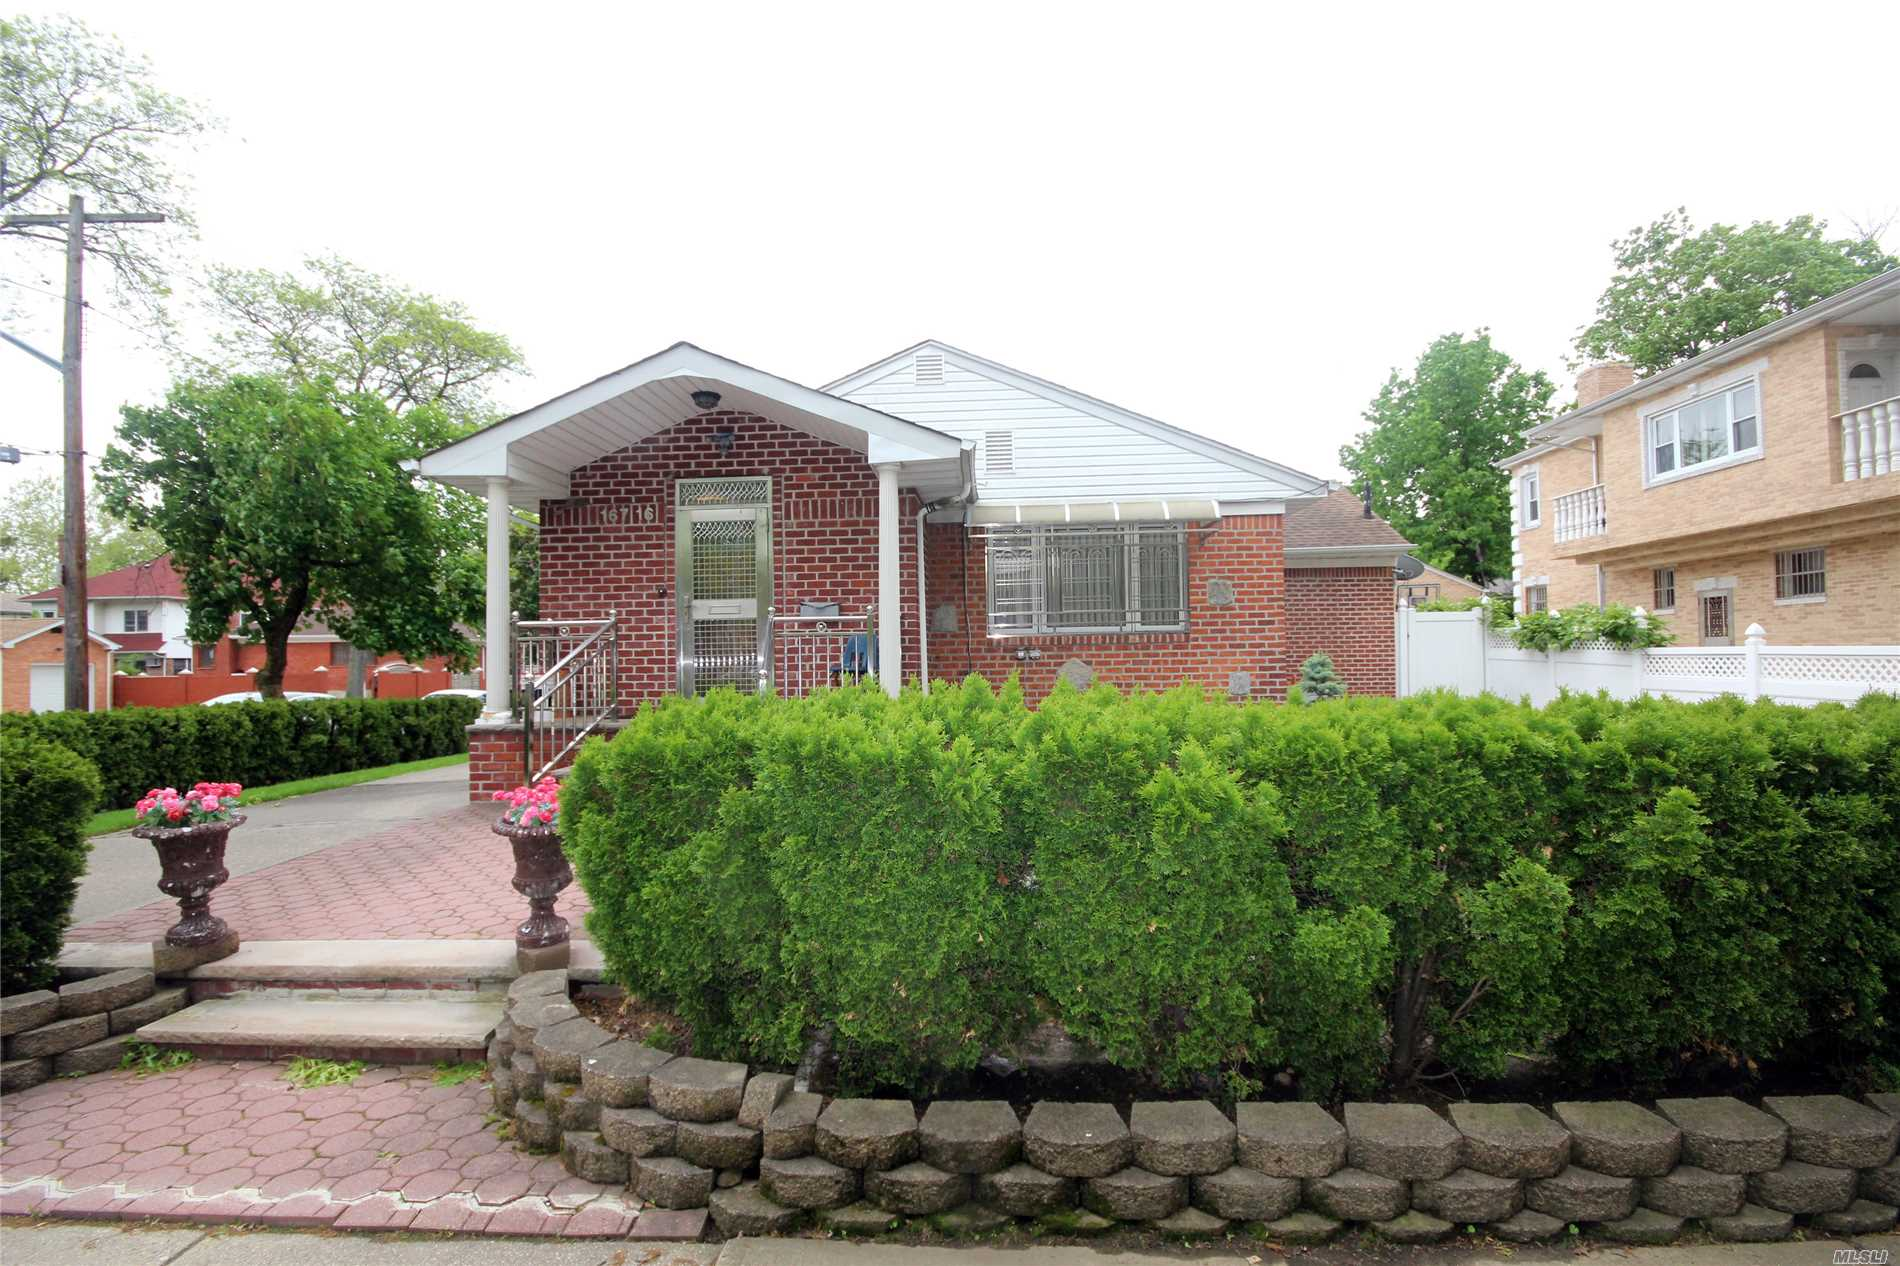 One Of A Kind Lot In Fresh Meadows. Renovated, 1 Family House With A Side Extension Of 12X18 (Large Eat In Kitchen). The House Features, Large Foyer, Living Room, Formal Dining Room, Large Eat In Kitchen With Skylight, 3-Bedrooms, 2.5-Baths, Large Full Finished Basement Equipped With Laundry Room, Walk In Cedar Closet And Boiler Room. The House Is Equipped With Central Vacuum System, Sprinkler System And Central Air, Spacious Backyard And Beautifully Landscaped Large Side Yard.